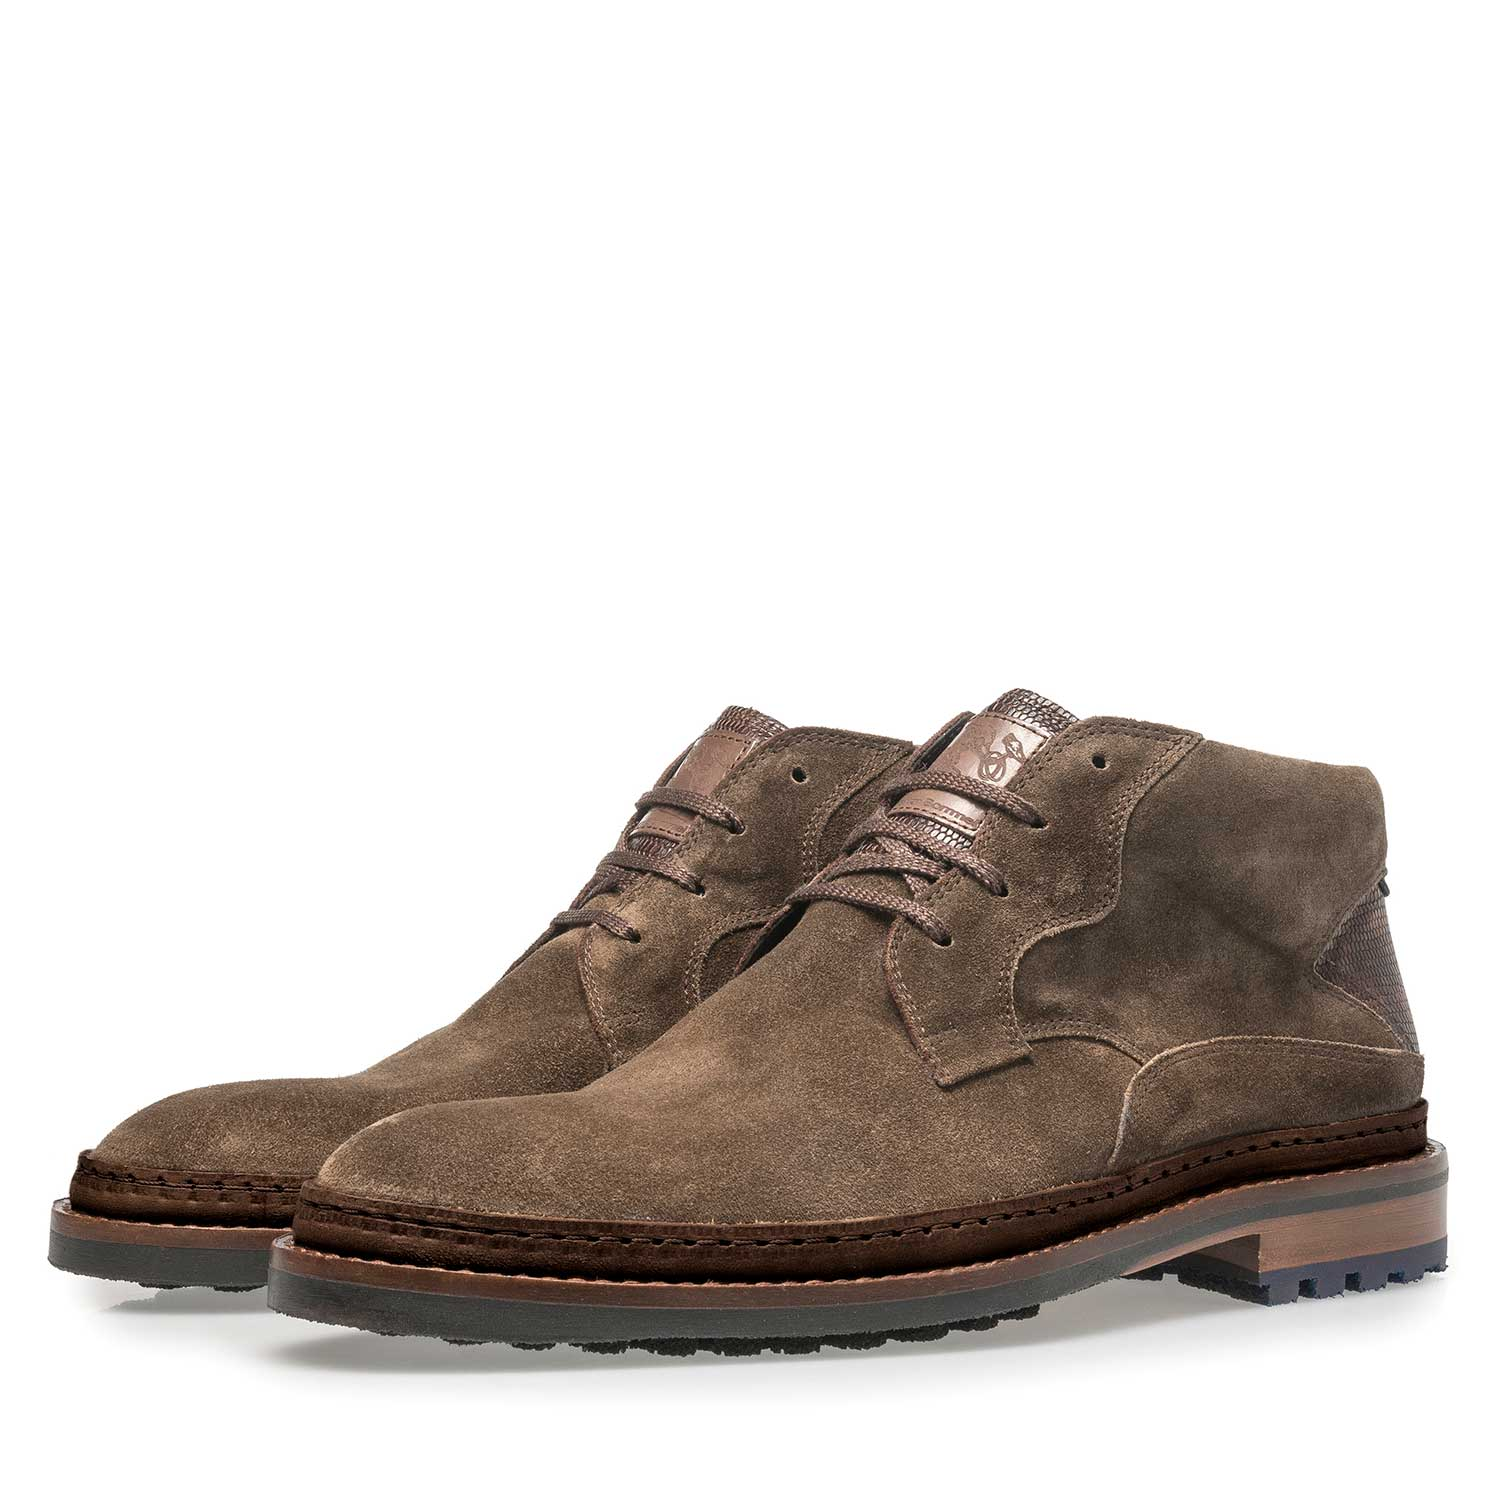 10509/04 - Suède veterboot donker taupe